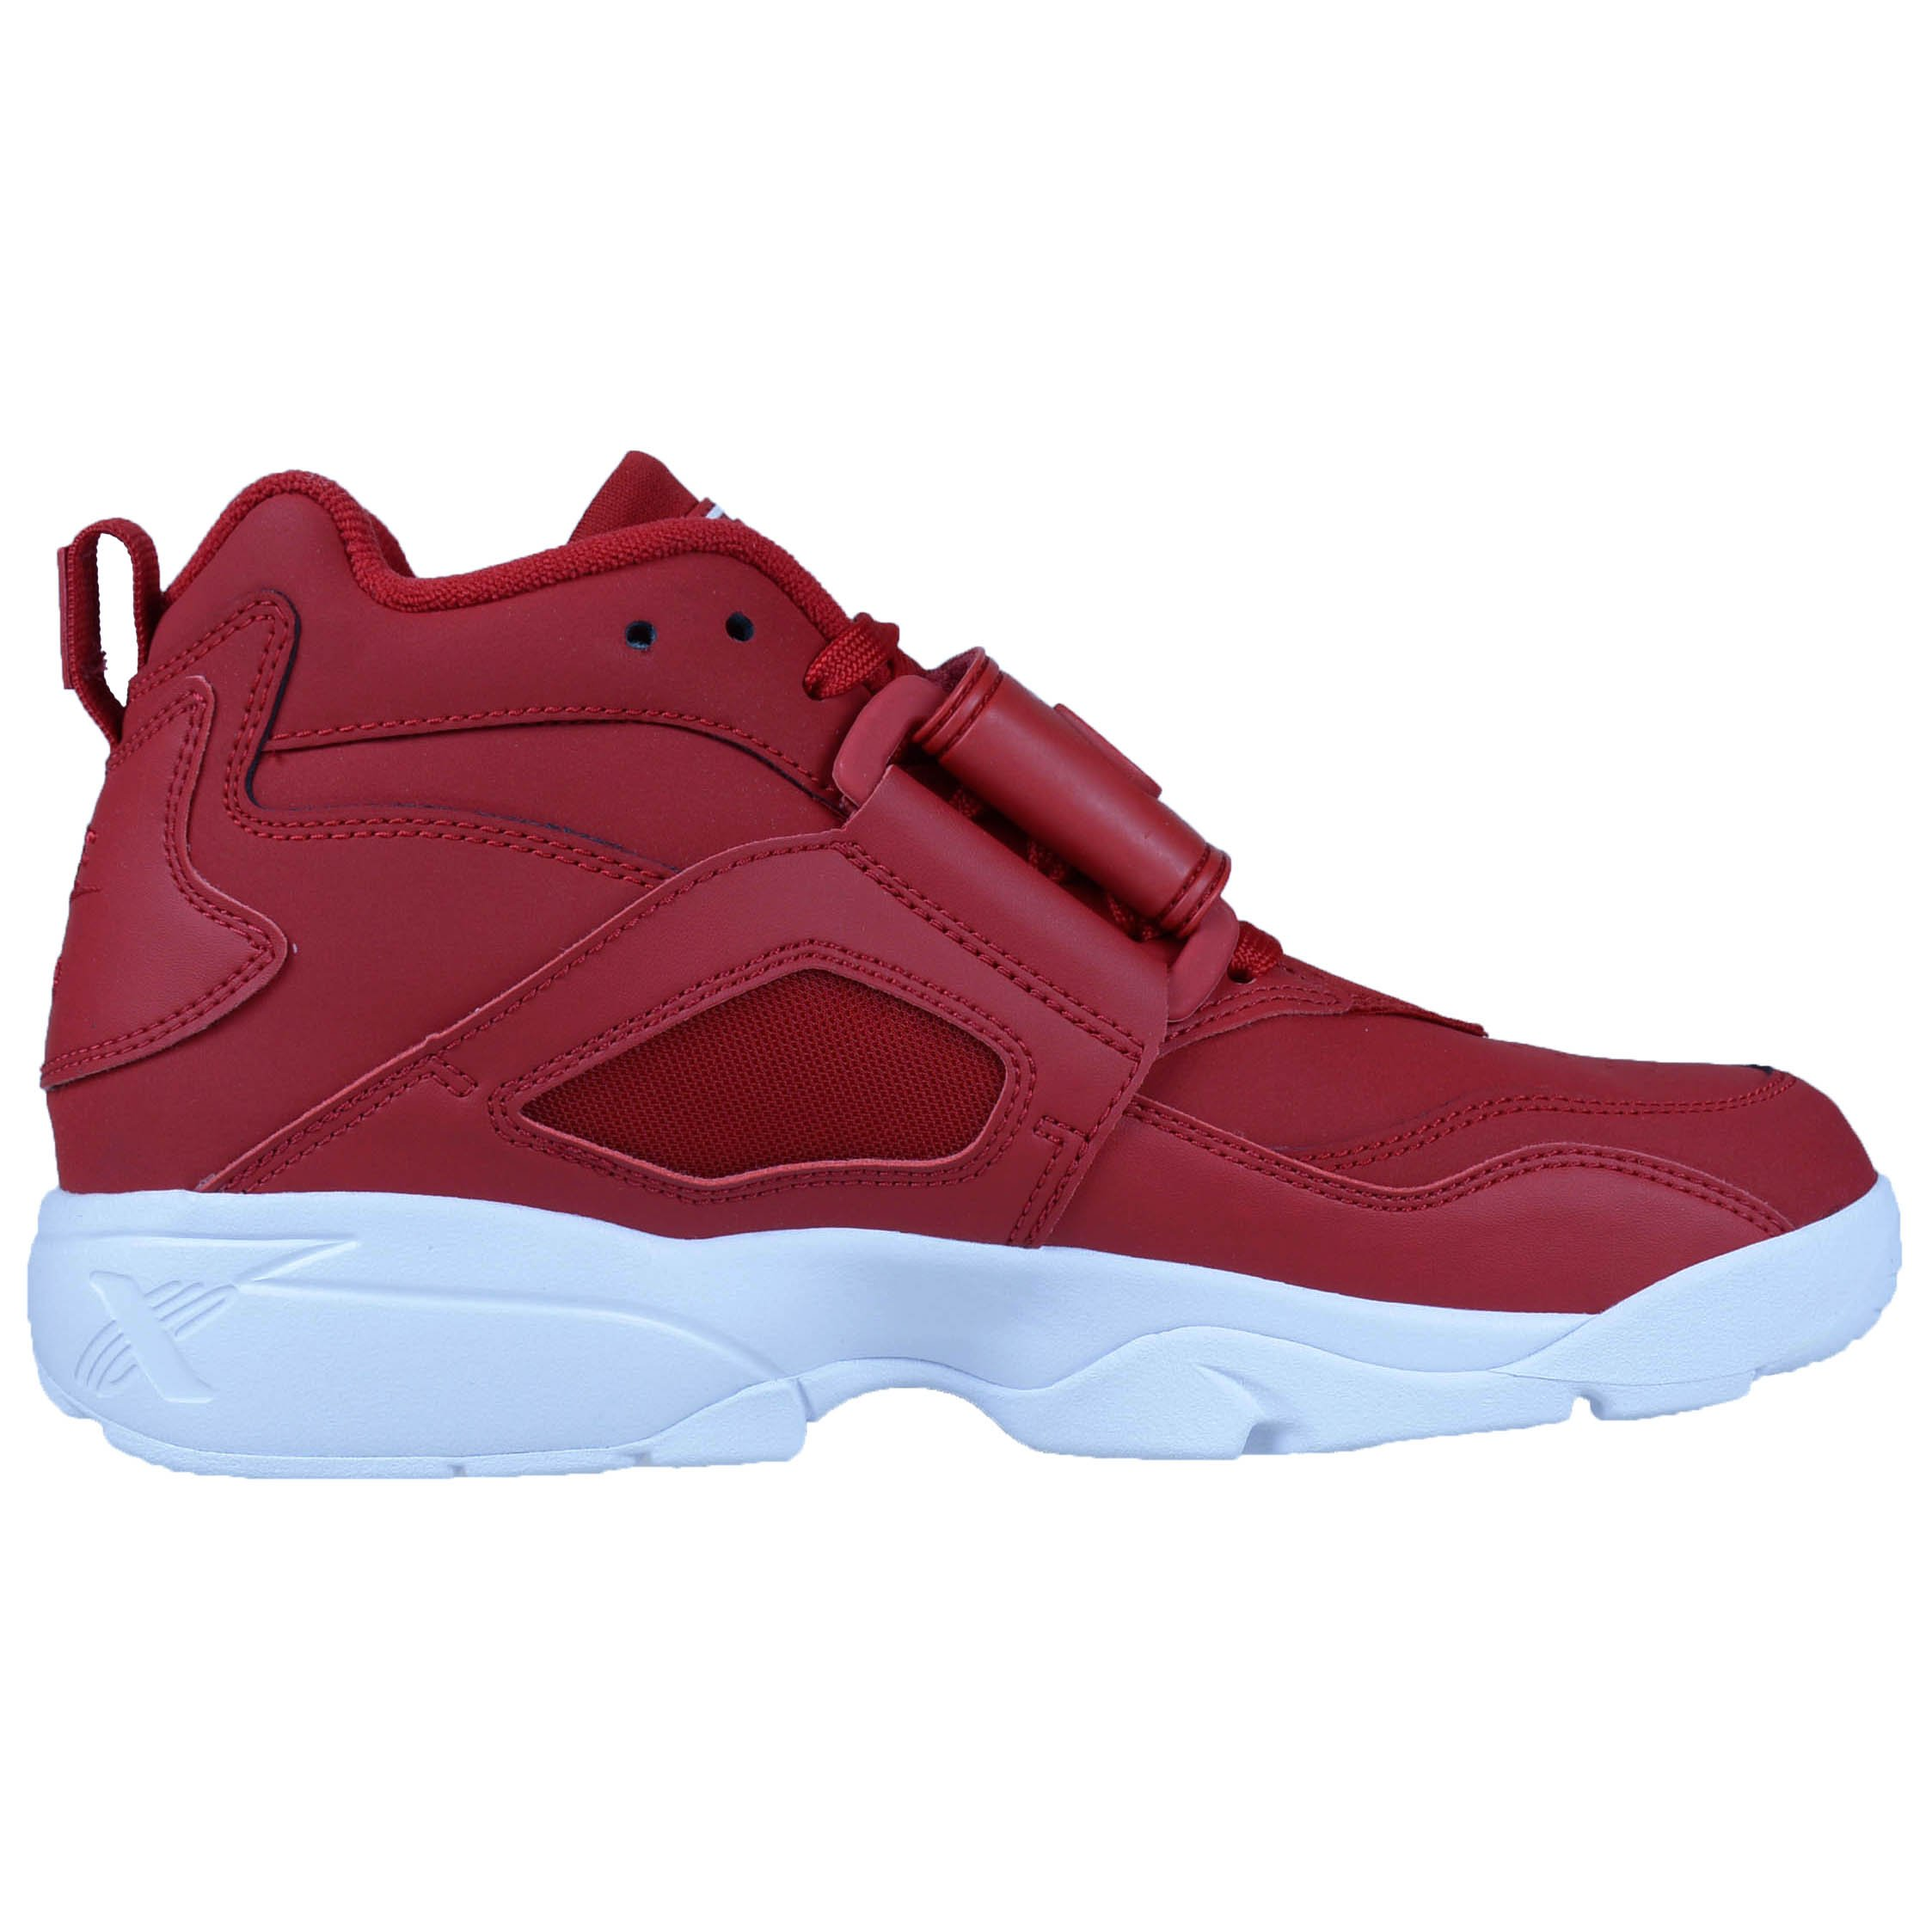 Nike Air Diamond Turf Gym Red/Gym Red-White (12 D(M) US) by Nike (Image #4)